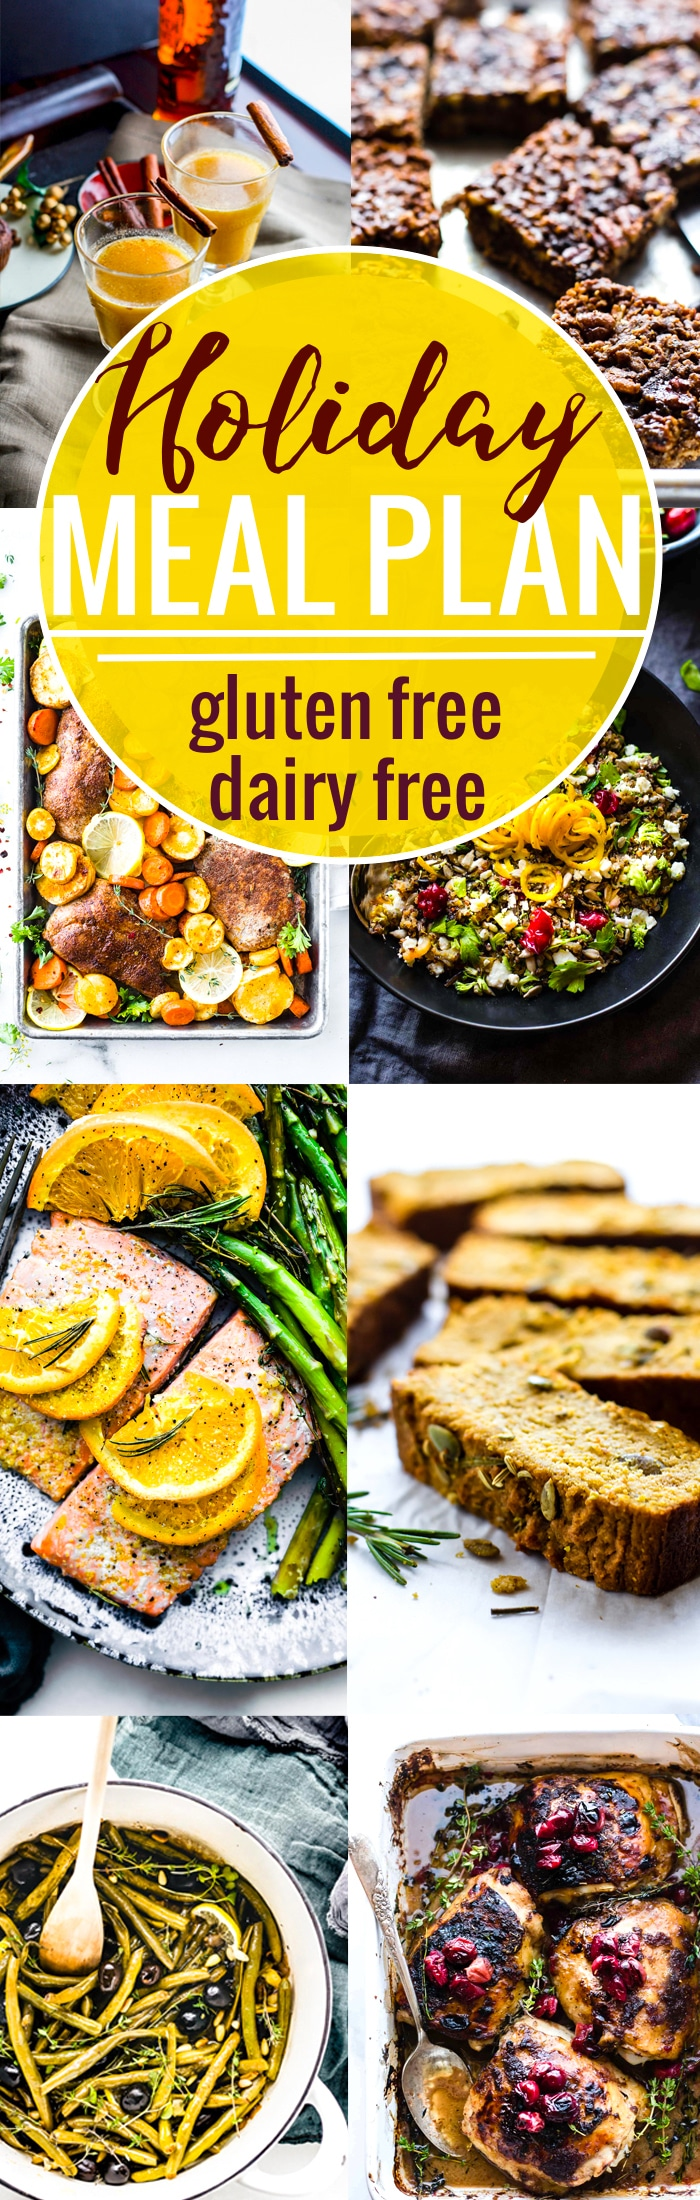 EATING well for the Thanksgiving and Christmas holidays just got a whole lot easier! New GLUTEN FREE AND DAIRY FREE HOLIDAY MEAL PLAN to help plan a menu of delicious and healthy holiday meals. www.cottercrunch.com #holidayrecipes #mealplan #glutenfree